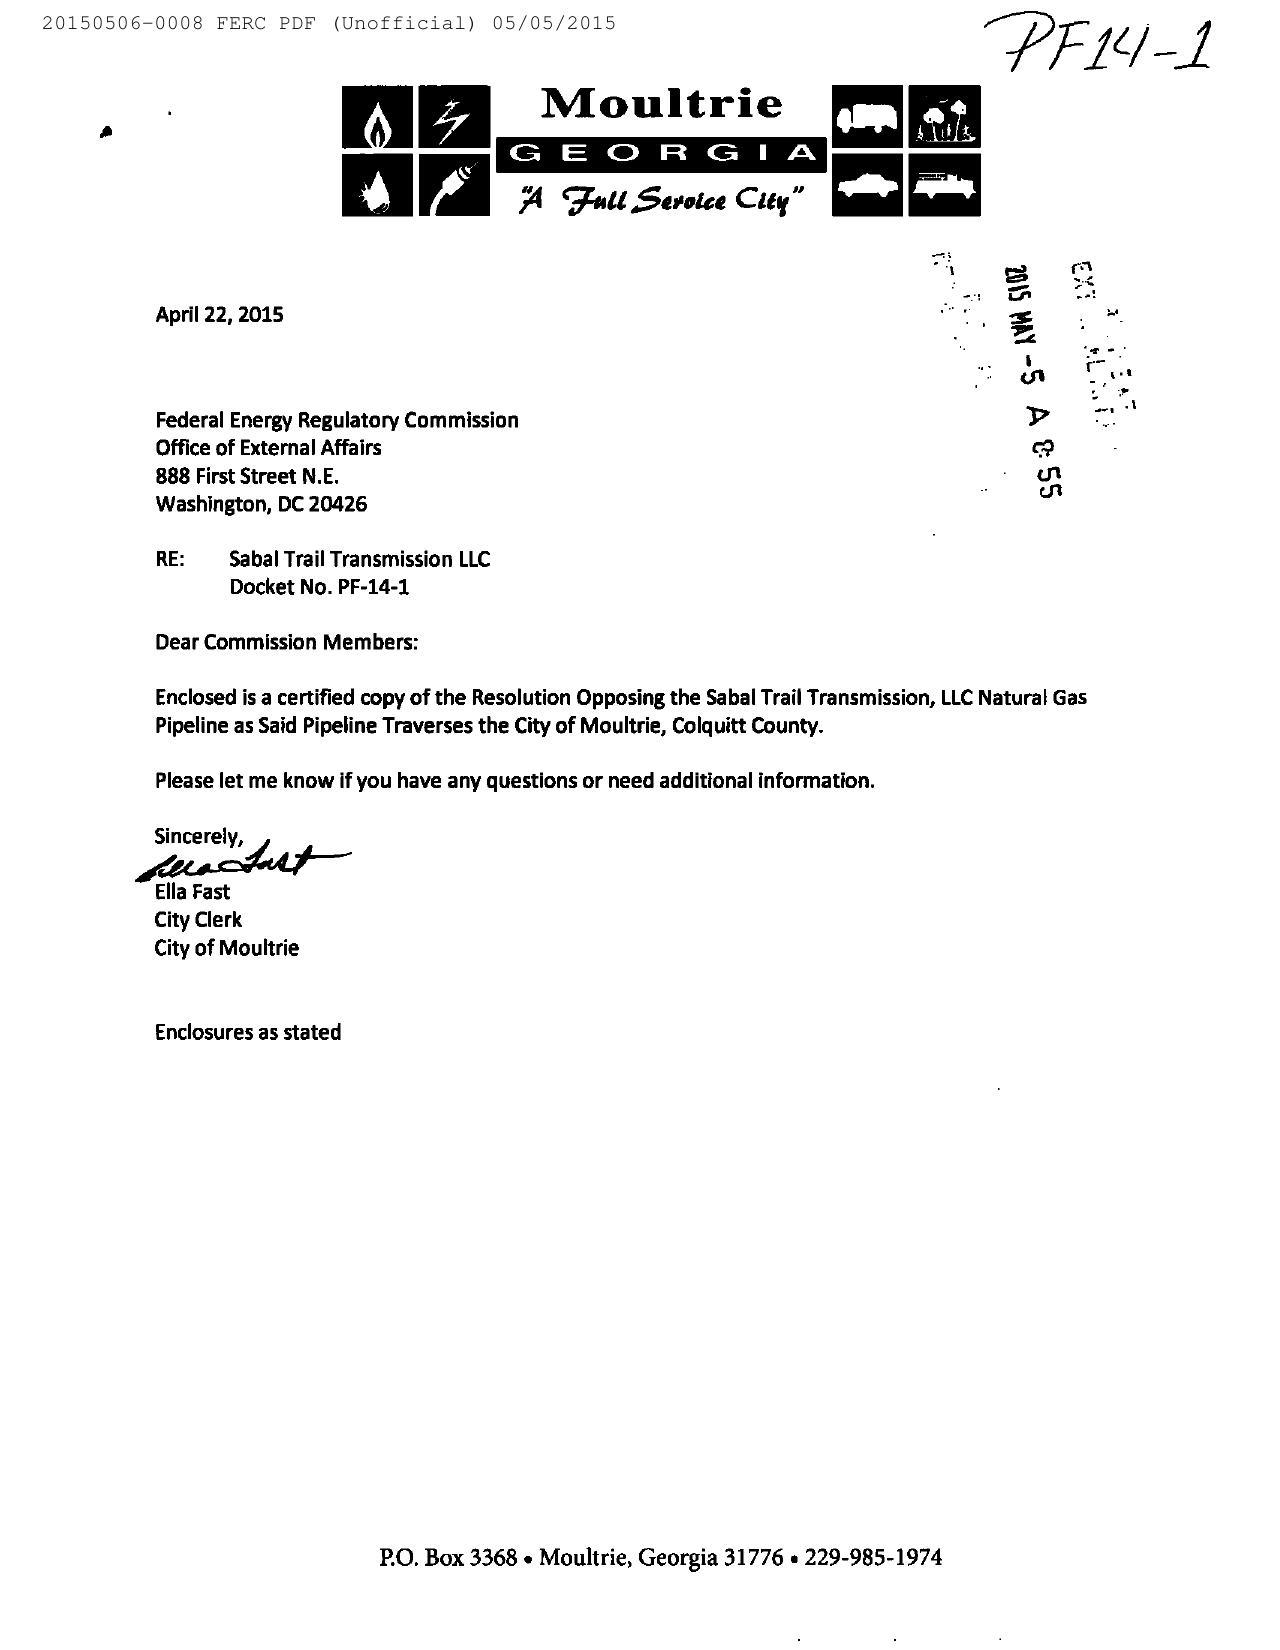 1280x1650 Cover Letter by Ella Fast, City Clerk, in Moultrie, GA resolution against Sabal Trail, by John S. Quarterman, for SpectraBusters.org, 6 May 2015